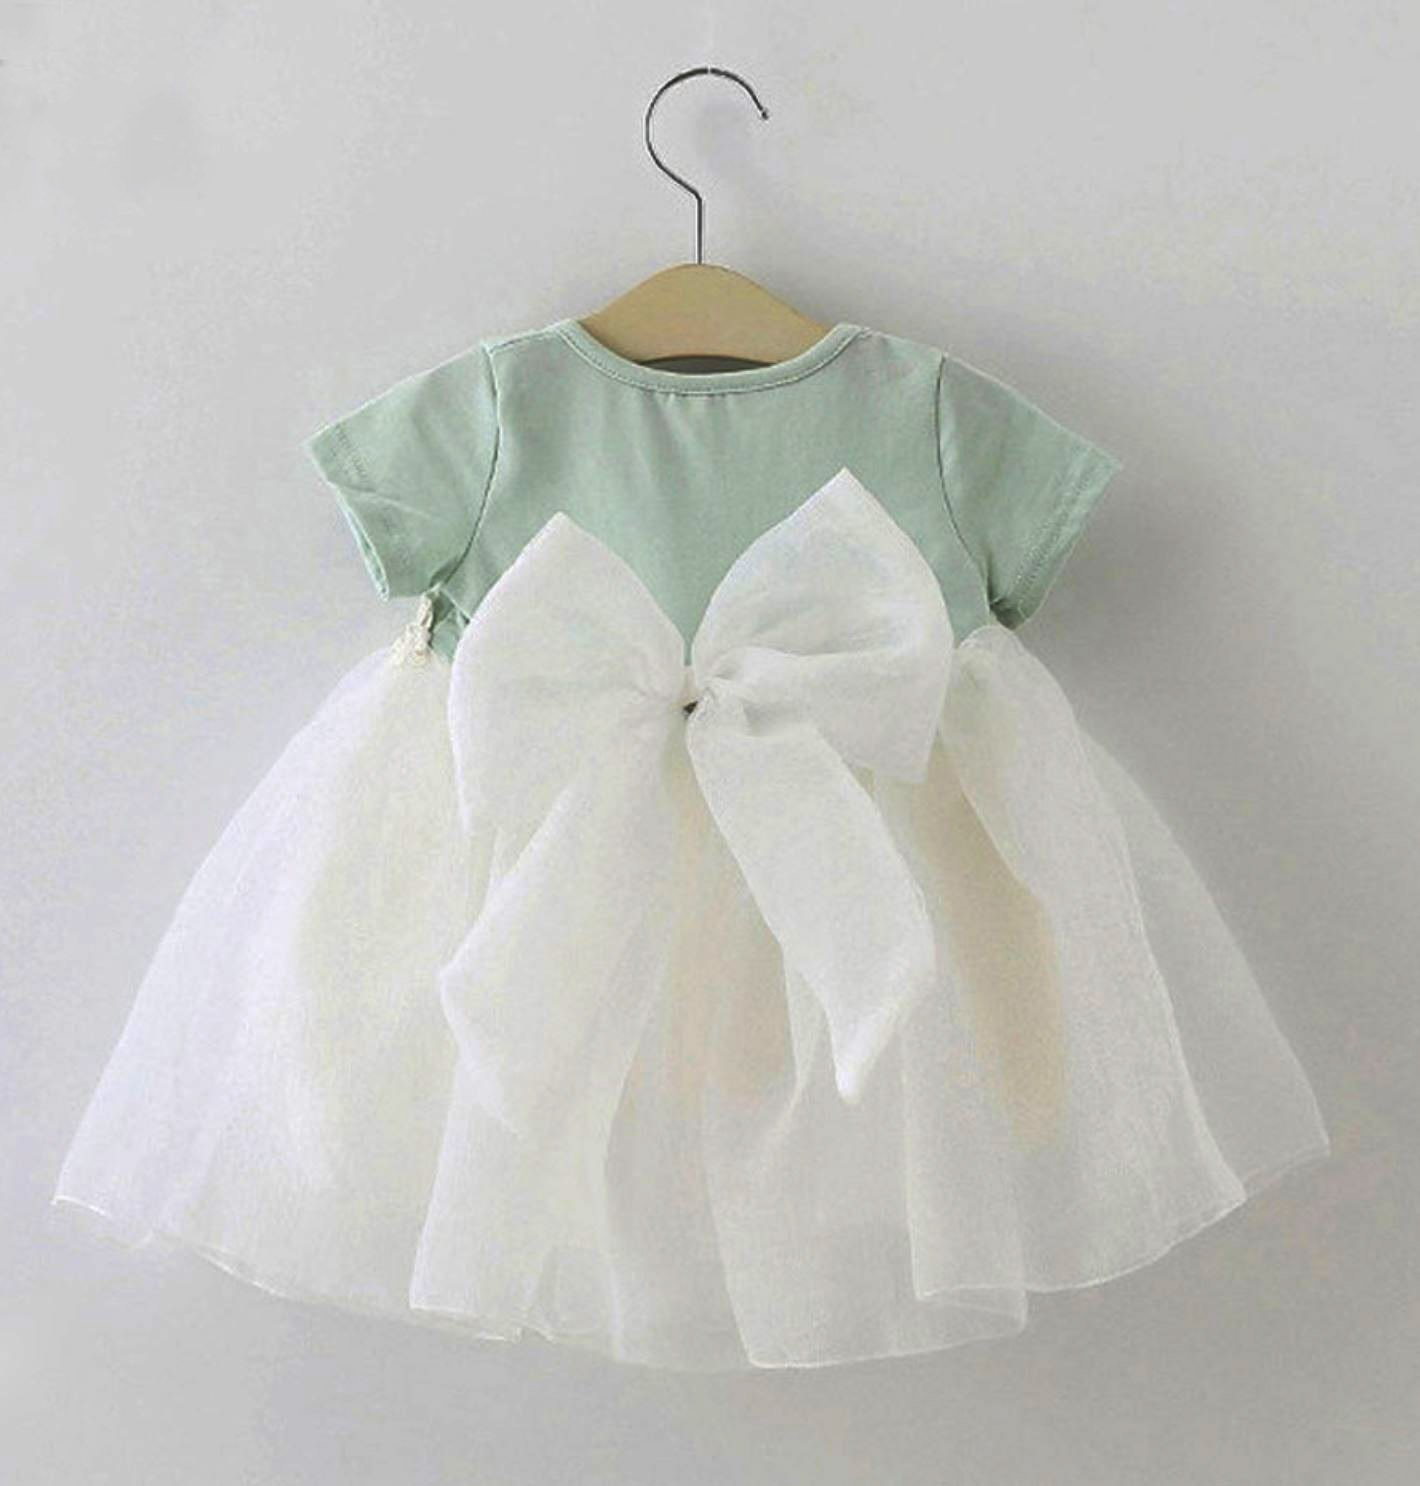 Big Bow Baby Dress 3 Months Mintgreen Dress Short Sleeves Cuteness Lively Free Shipping Baby Dress